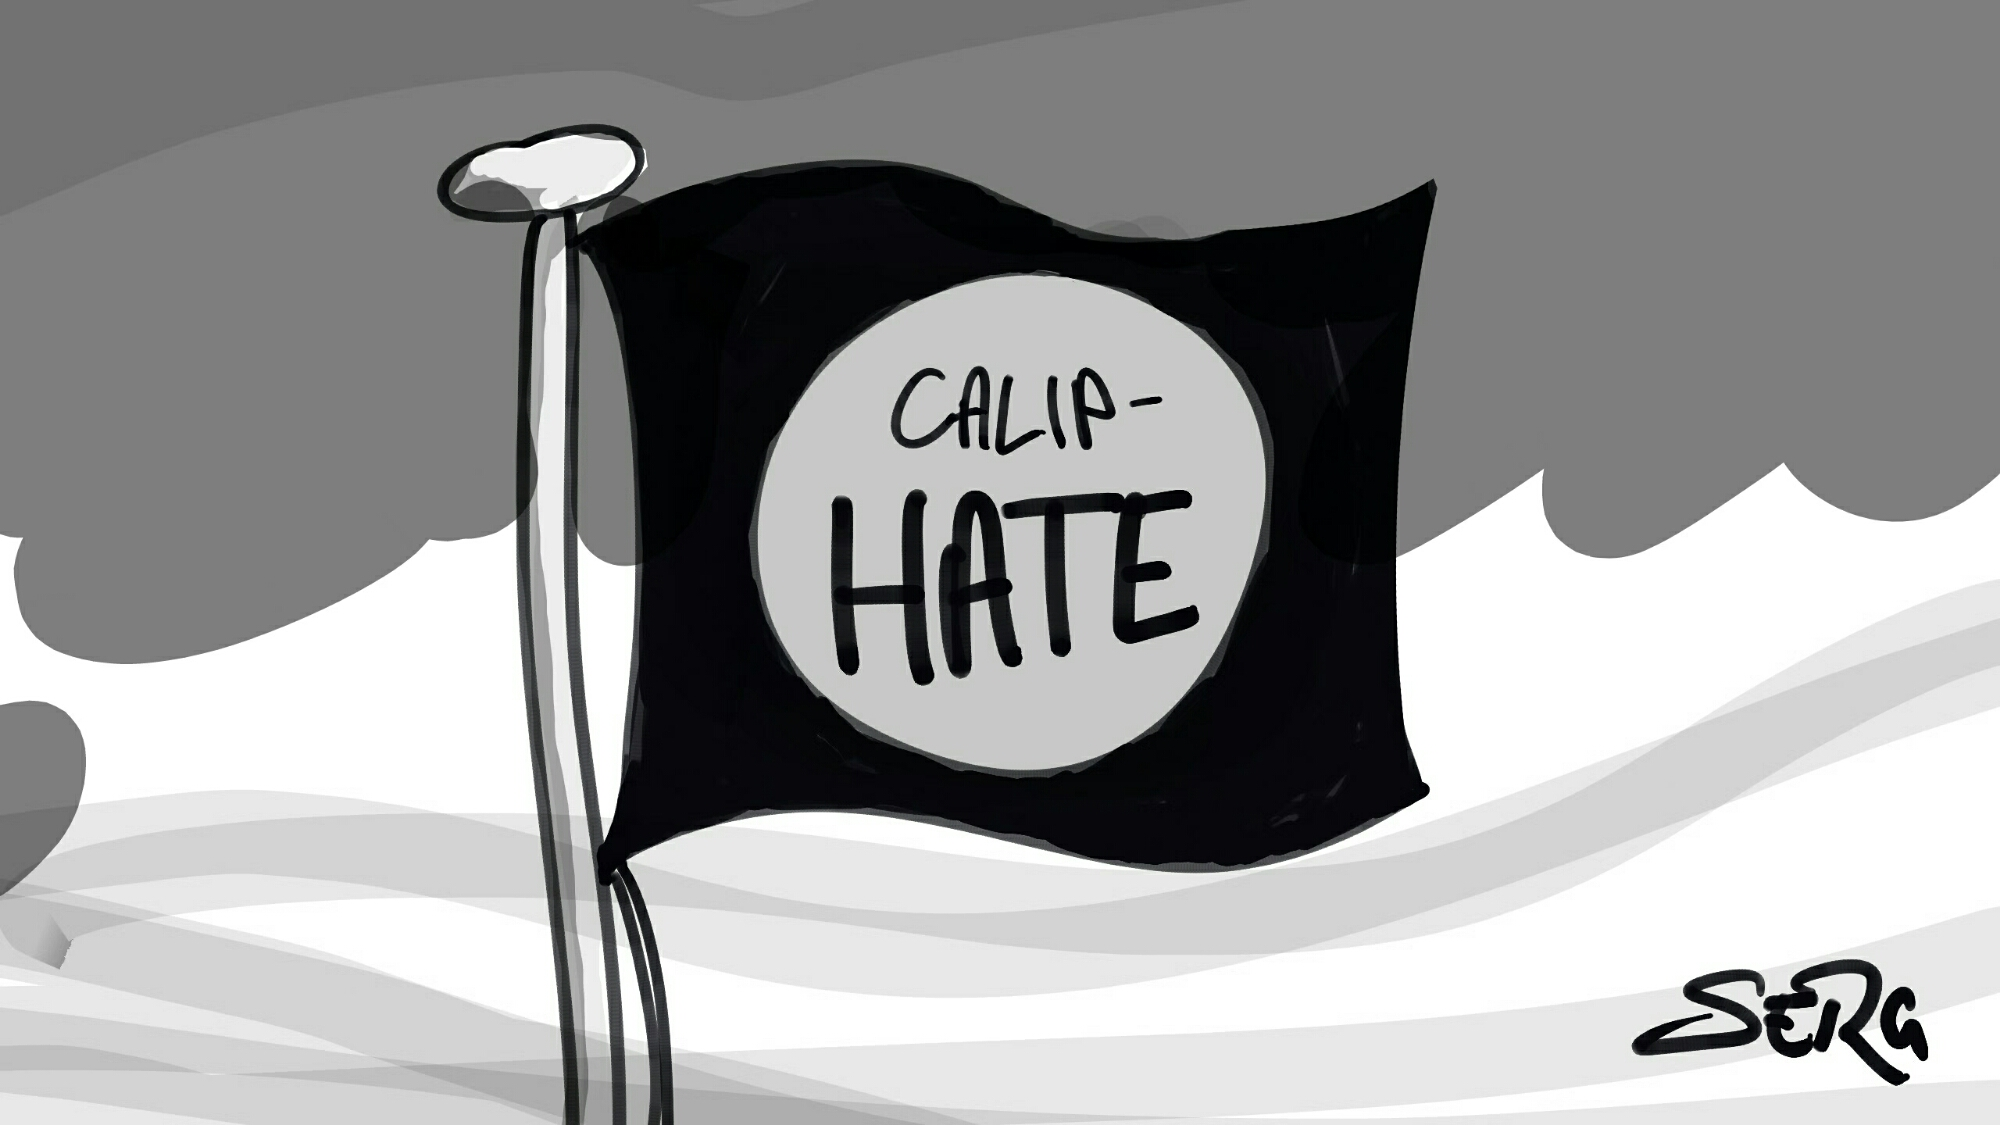 """Flag of the ISIS caliphate, only broken so as to read """"Calip-hate""""."""